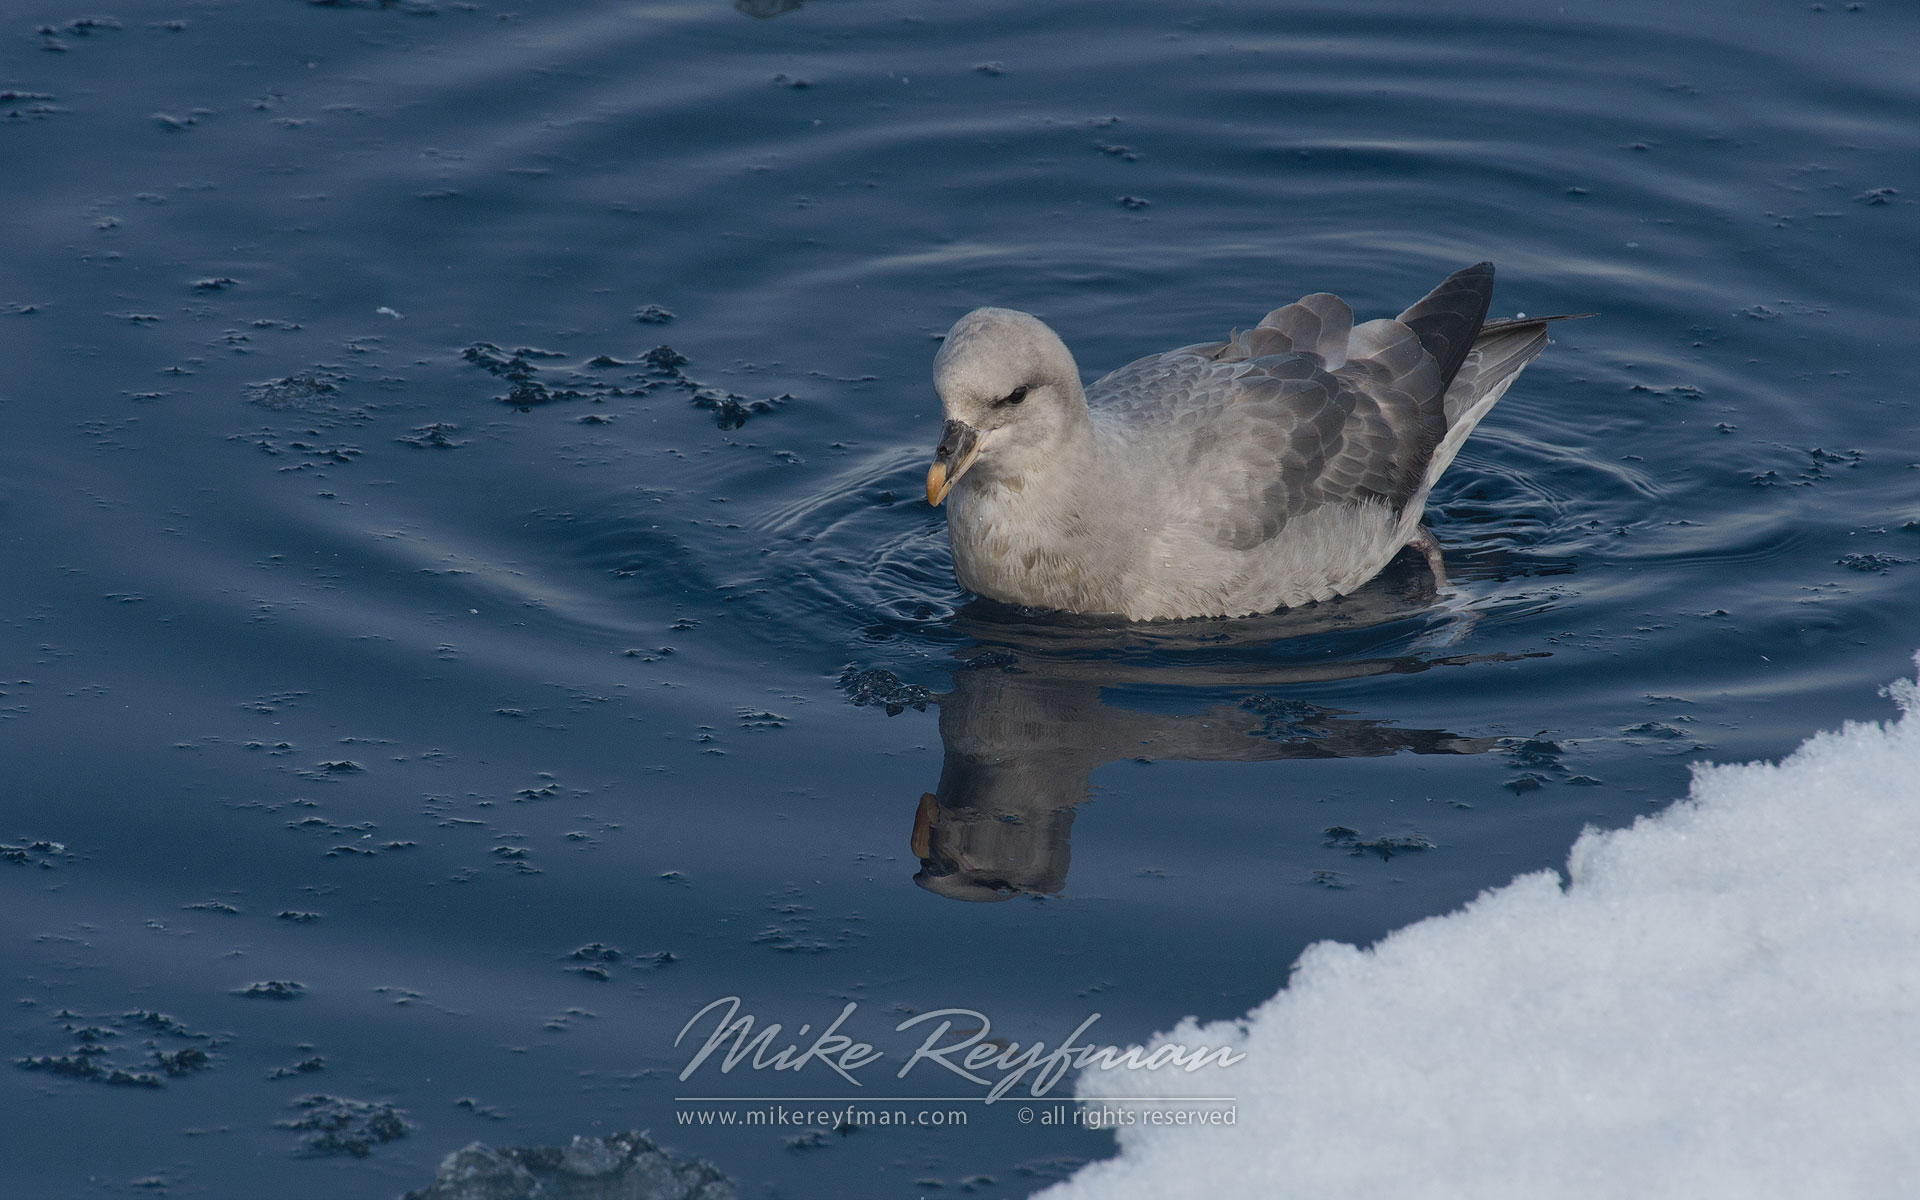 Northern Fulmar (Fulmarus glacialis). Spitsbergen, Svalbard, Norway. - Wildlife-Svalbard-Spitsbergen-Norway - Mike Reyfman Photography